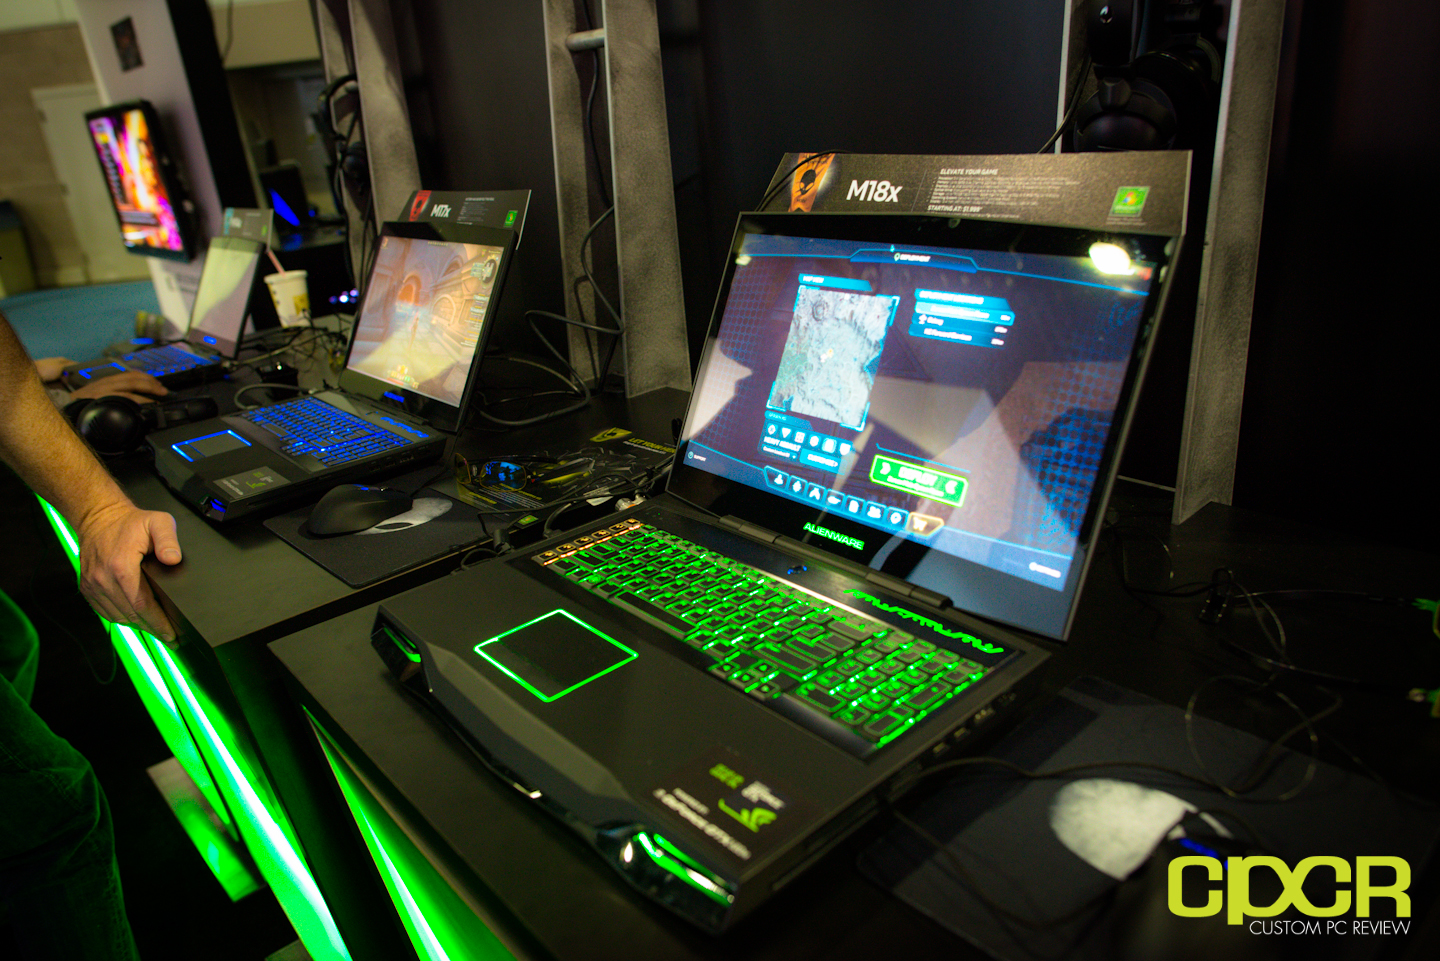 Alienware E3 2012 Custom Pc Review